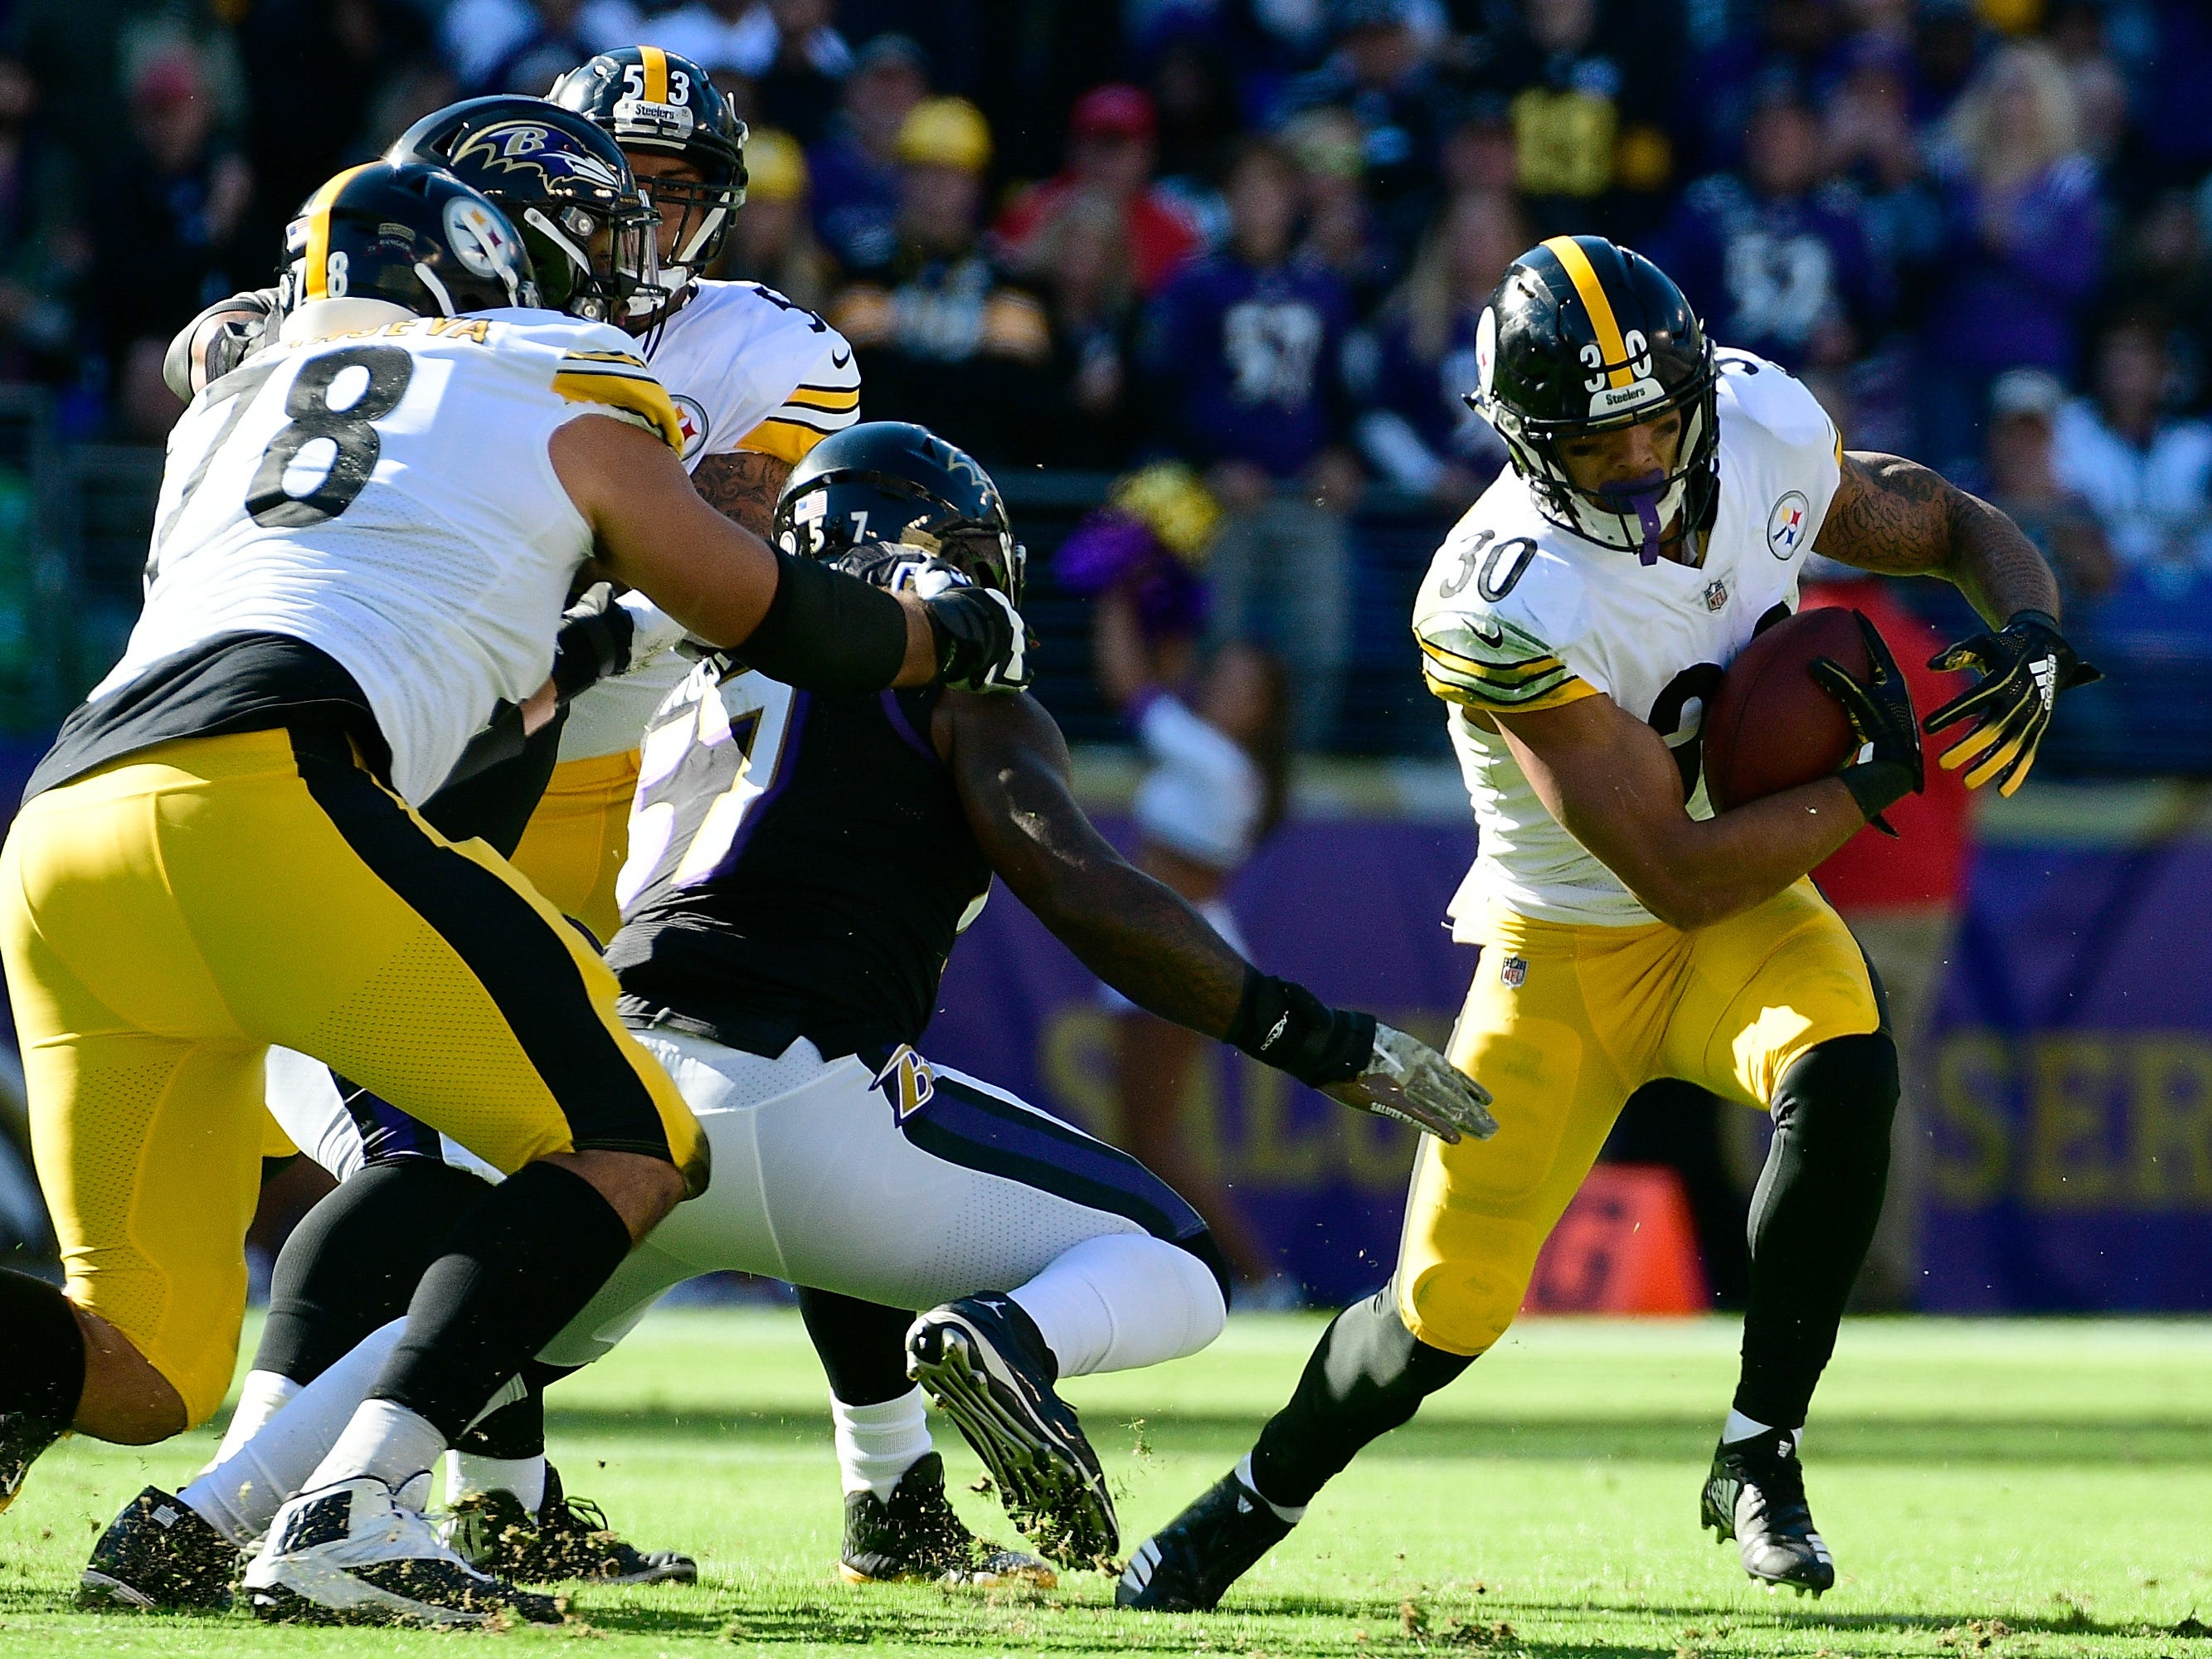 Pittsburgh Steelers running back James Conner (30) eludes a tackler during the first quarter against the Baltimore Ravens at M&T Bank Stadium.